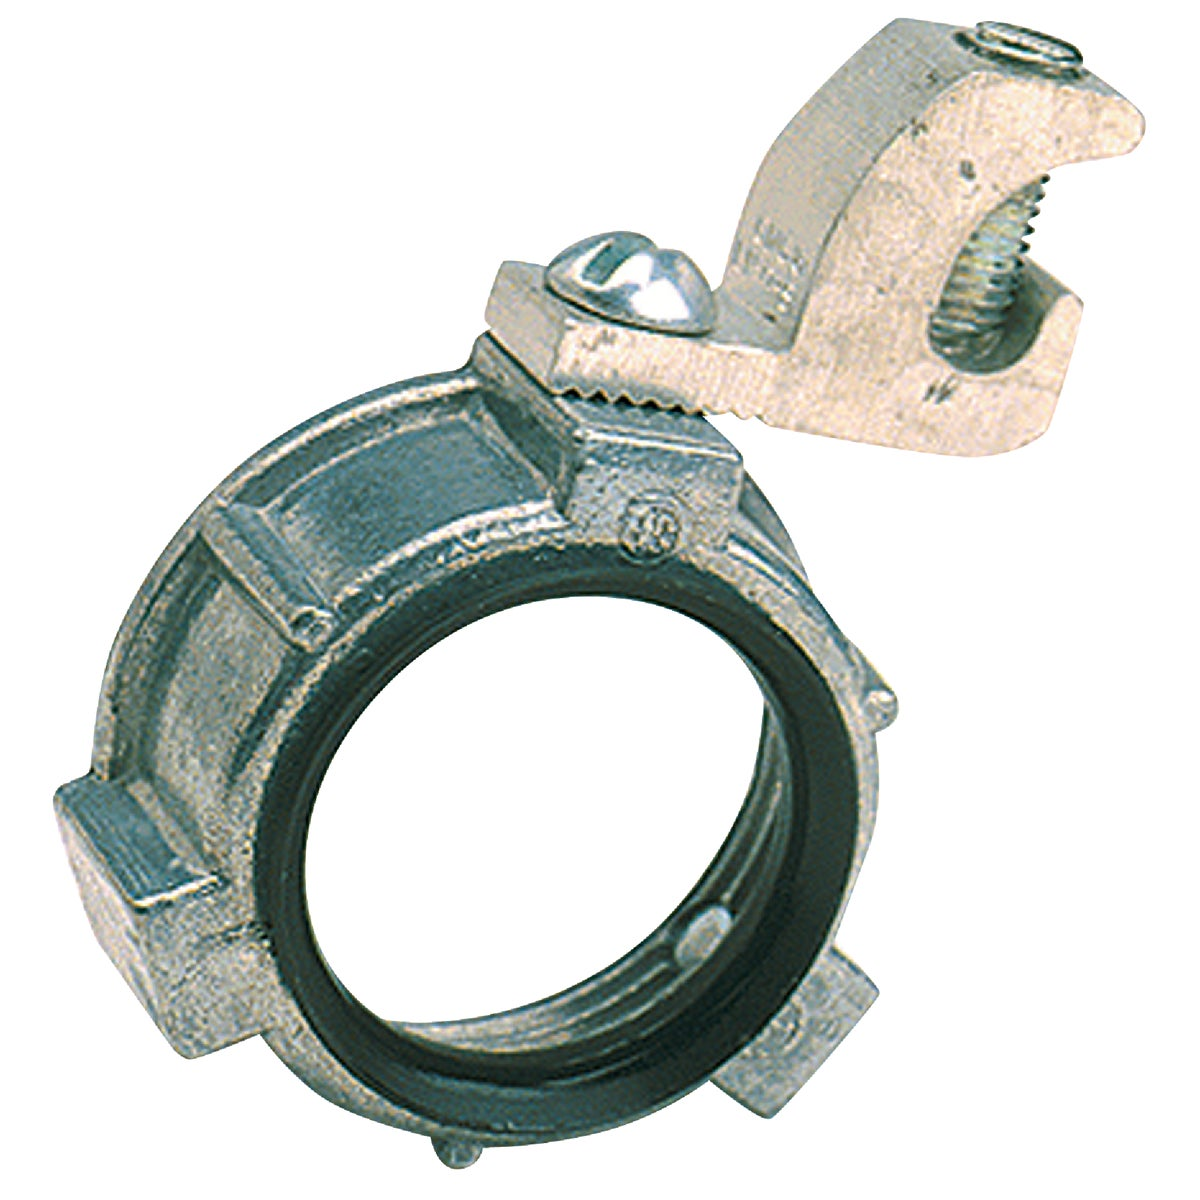 "2"" BUSHING - BG206A1 by Thomas & Betts"